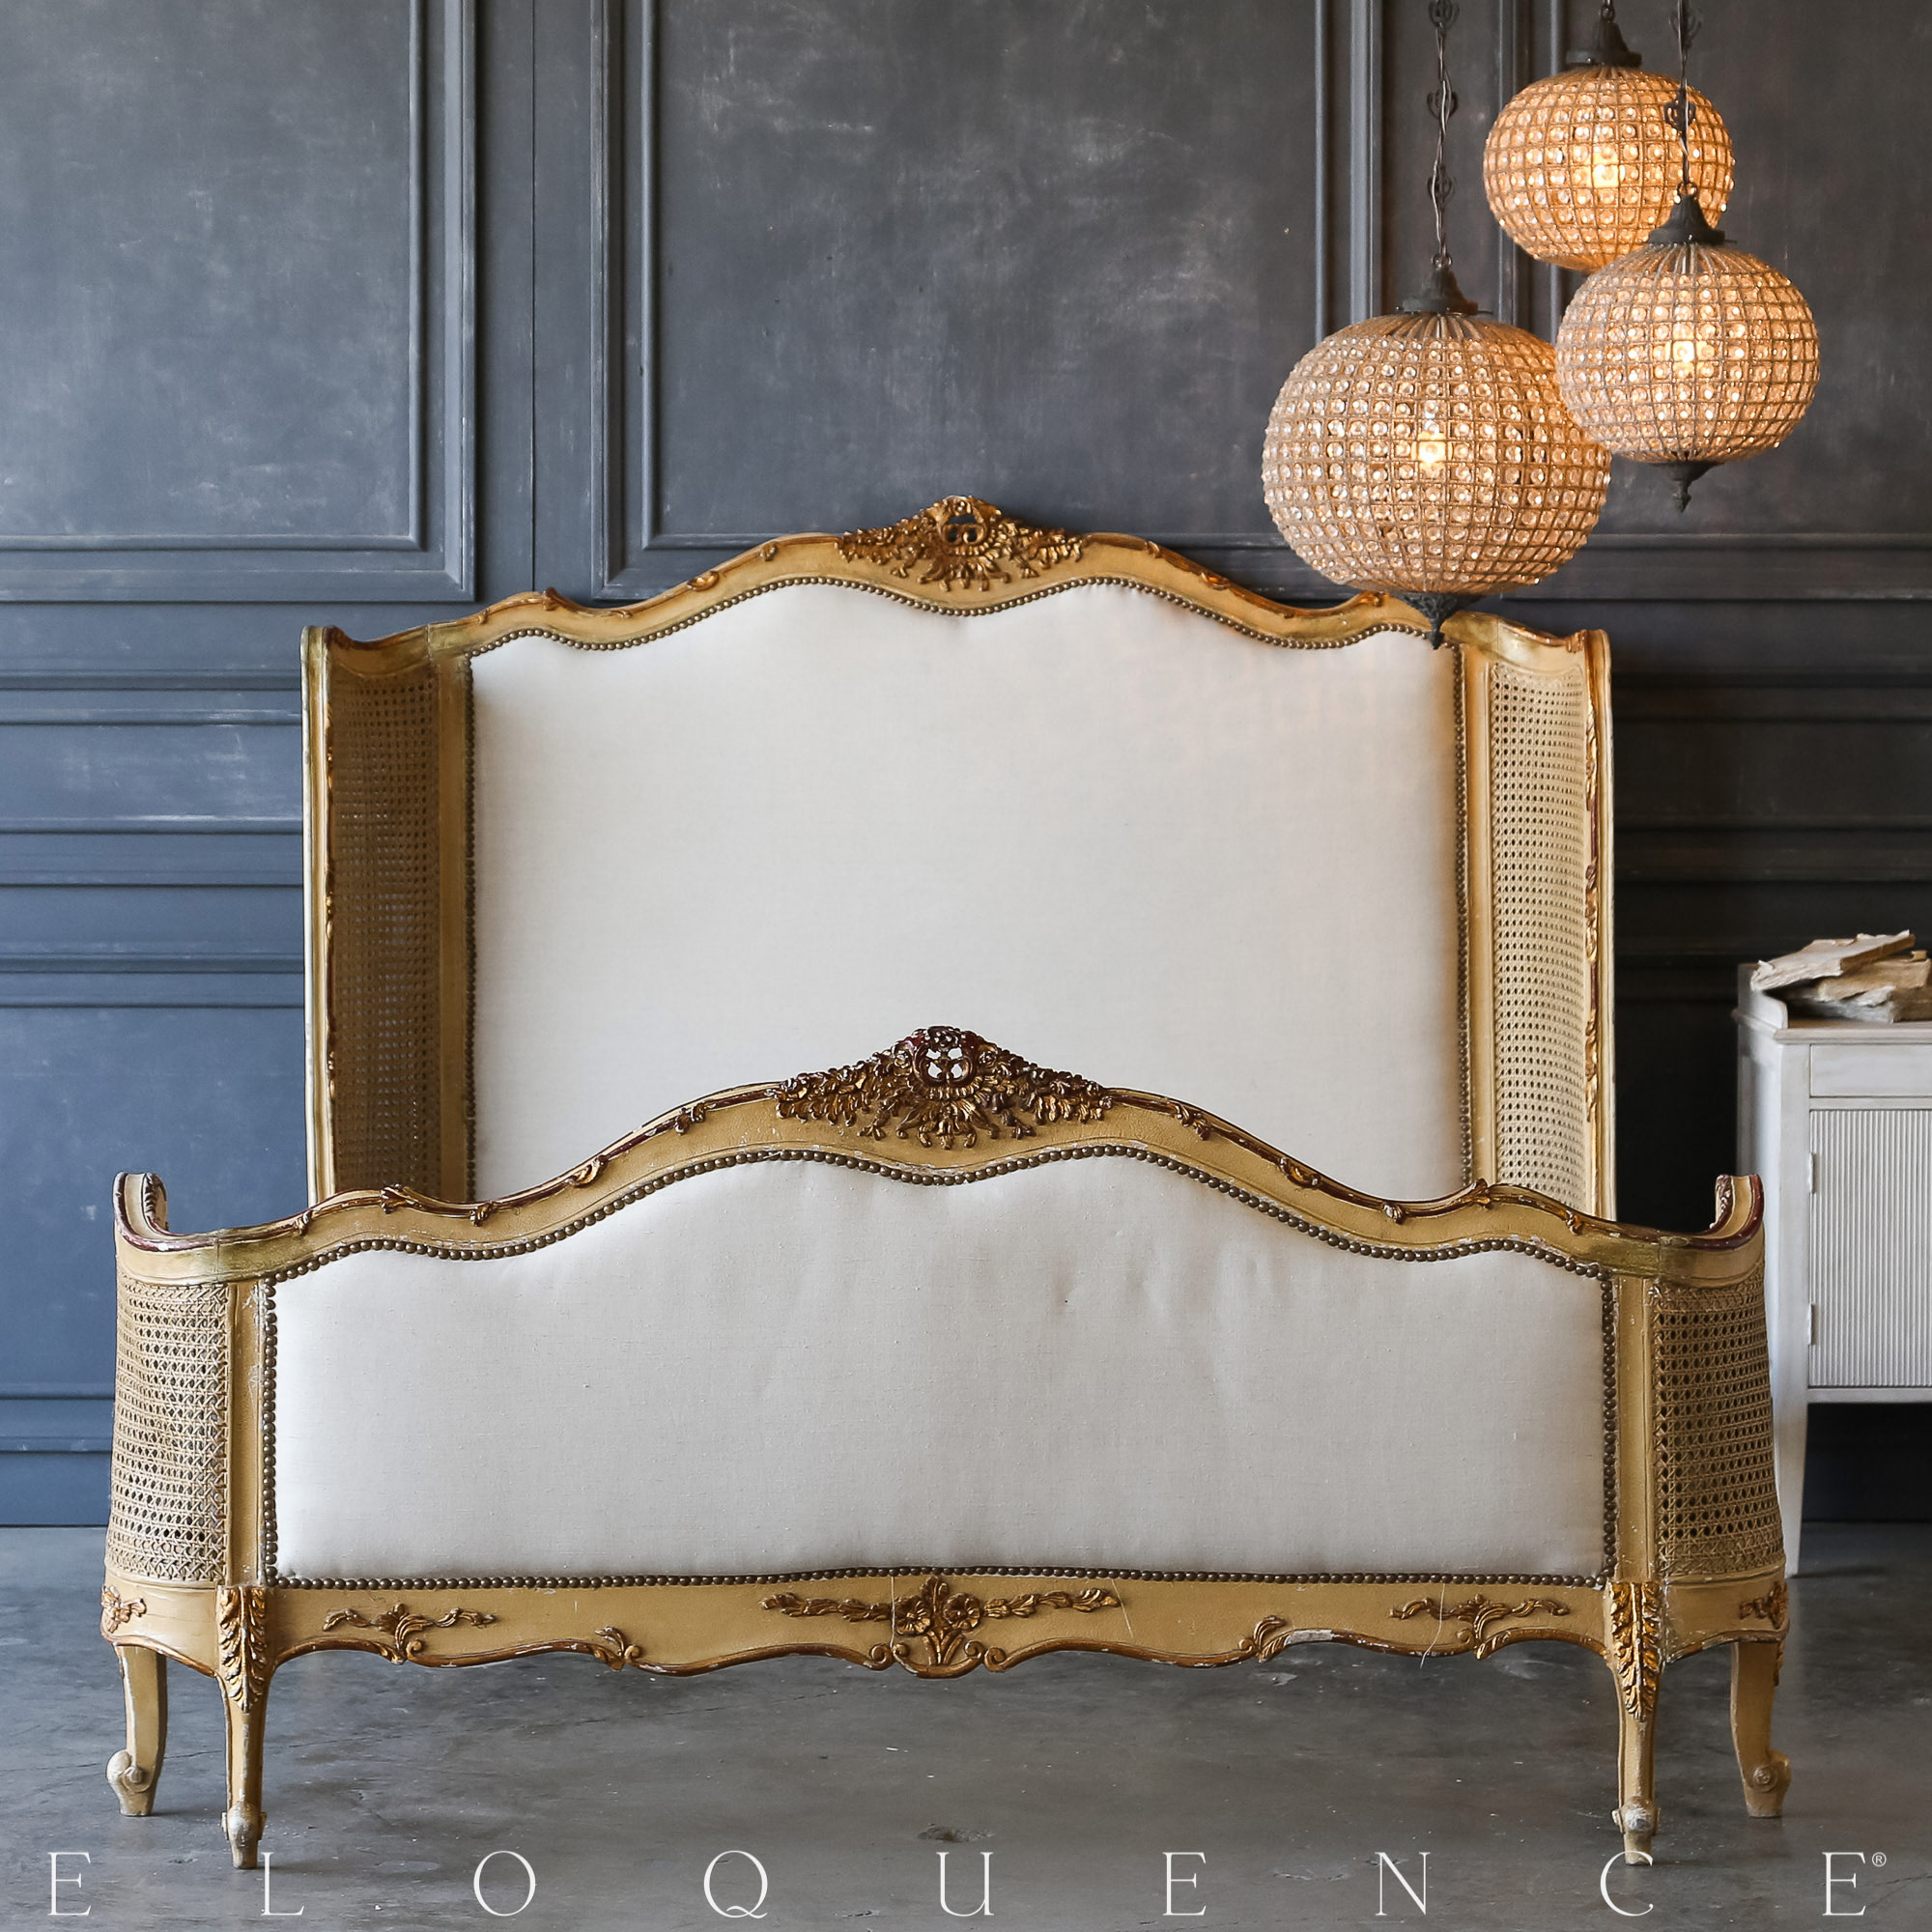 Eloquence® Vintage Apricot Cane Bed: 1940